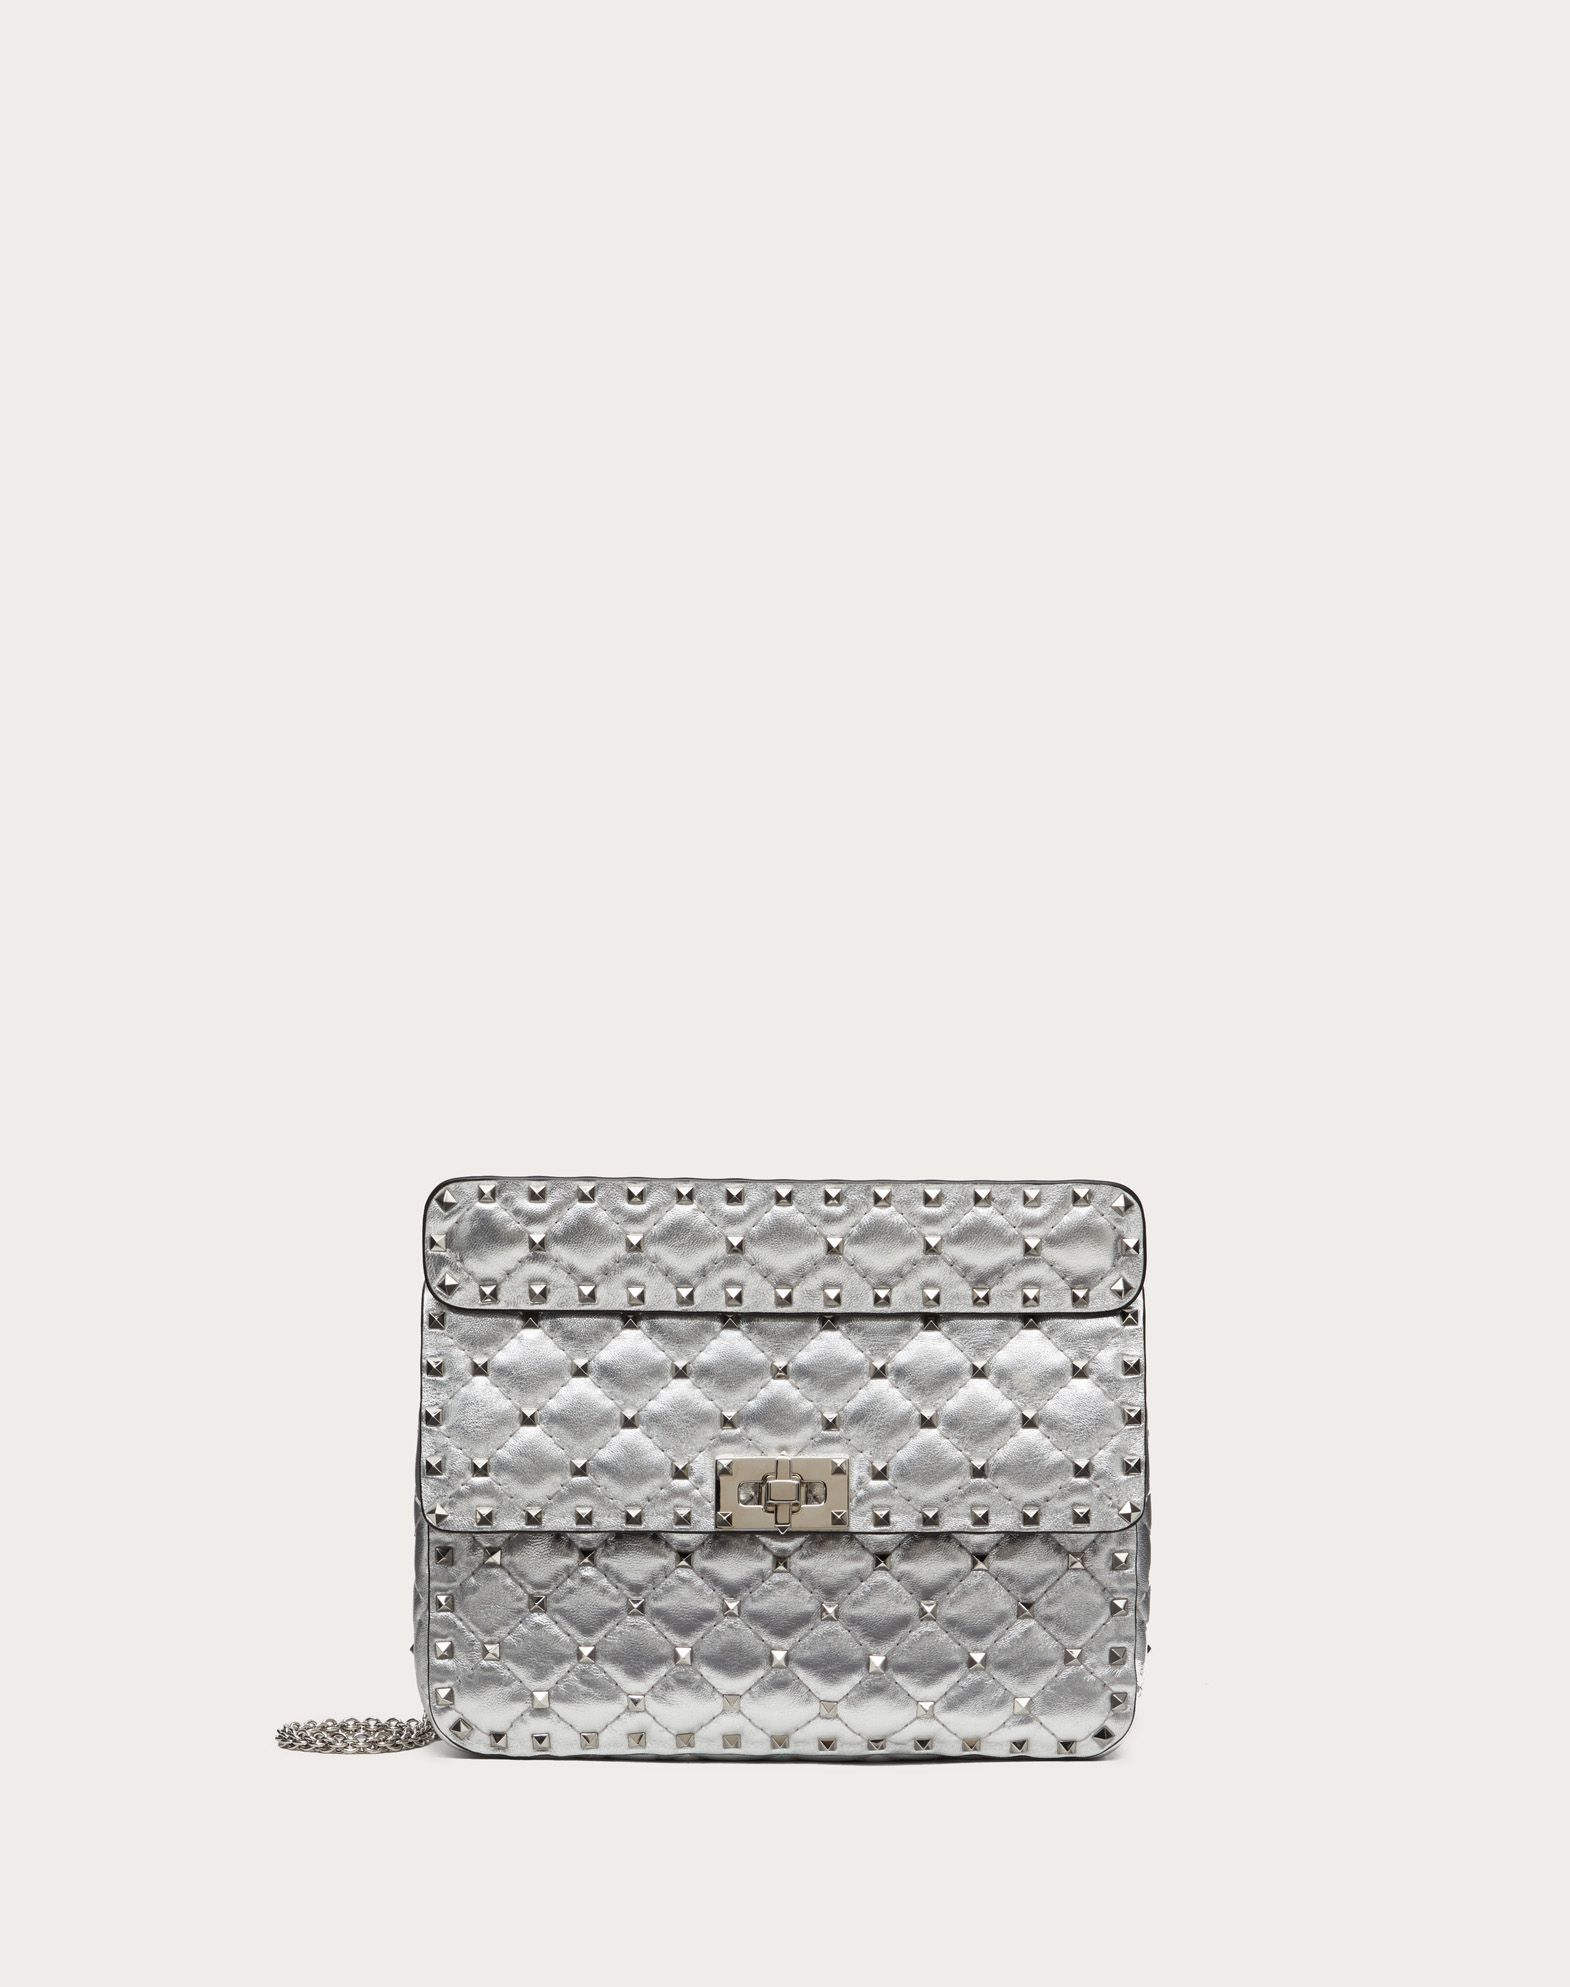 VALENTINO Studs Solid color Framed closure Internal pocket Removable shoulder strap  45400753rr